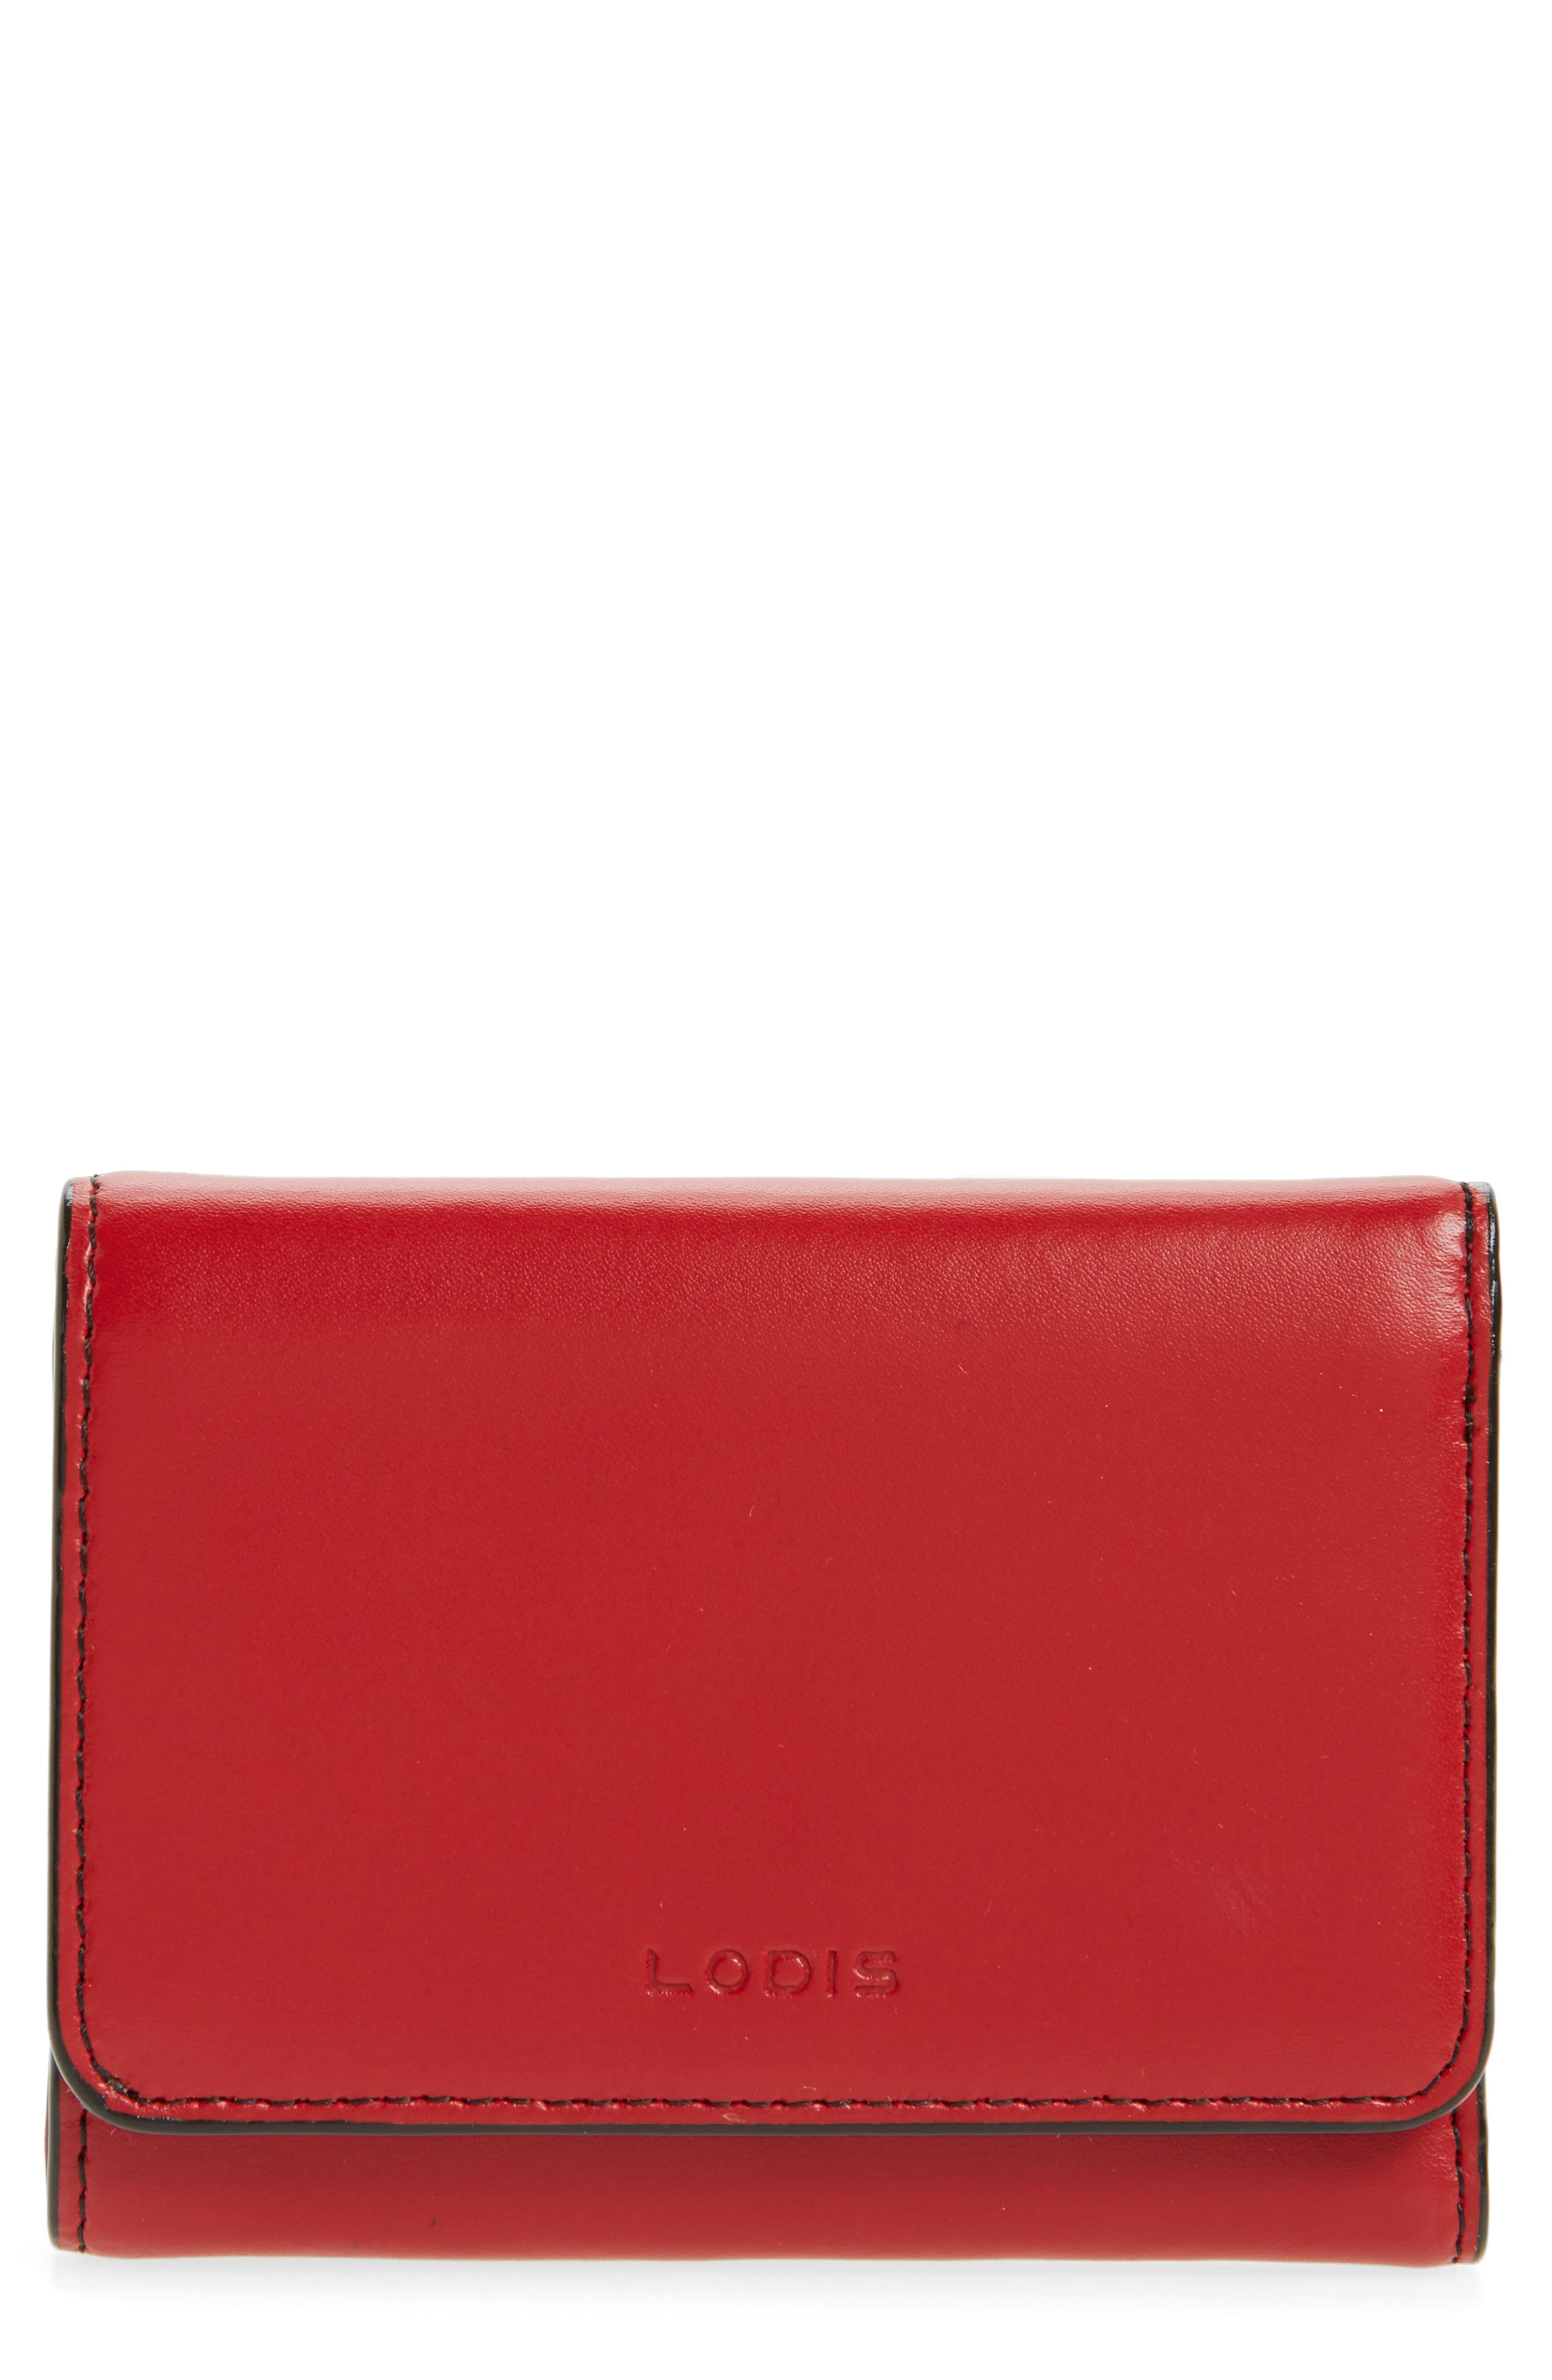 Lodis Mallory RFID Leather Wallet